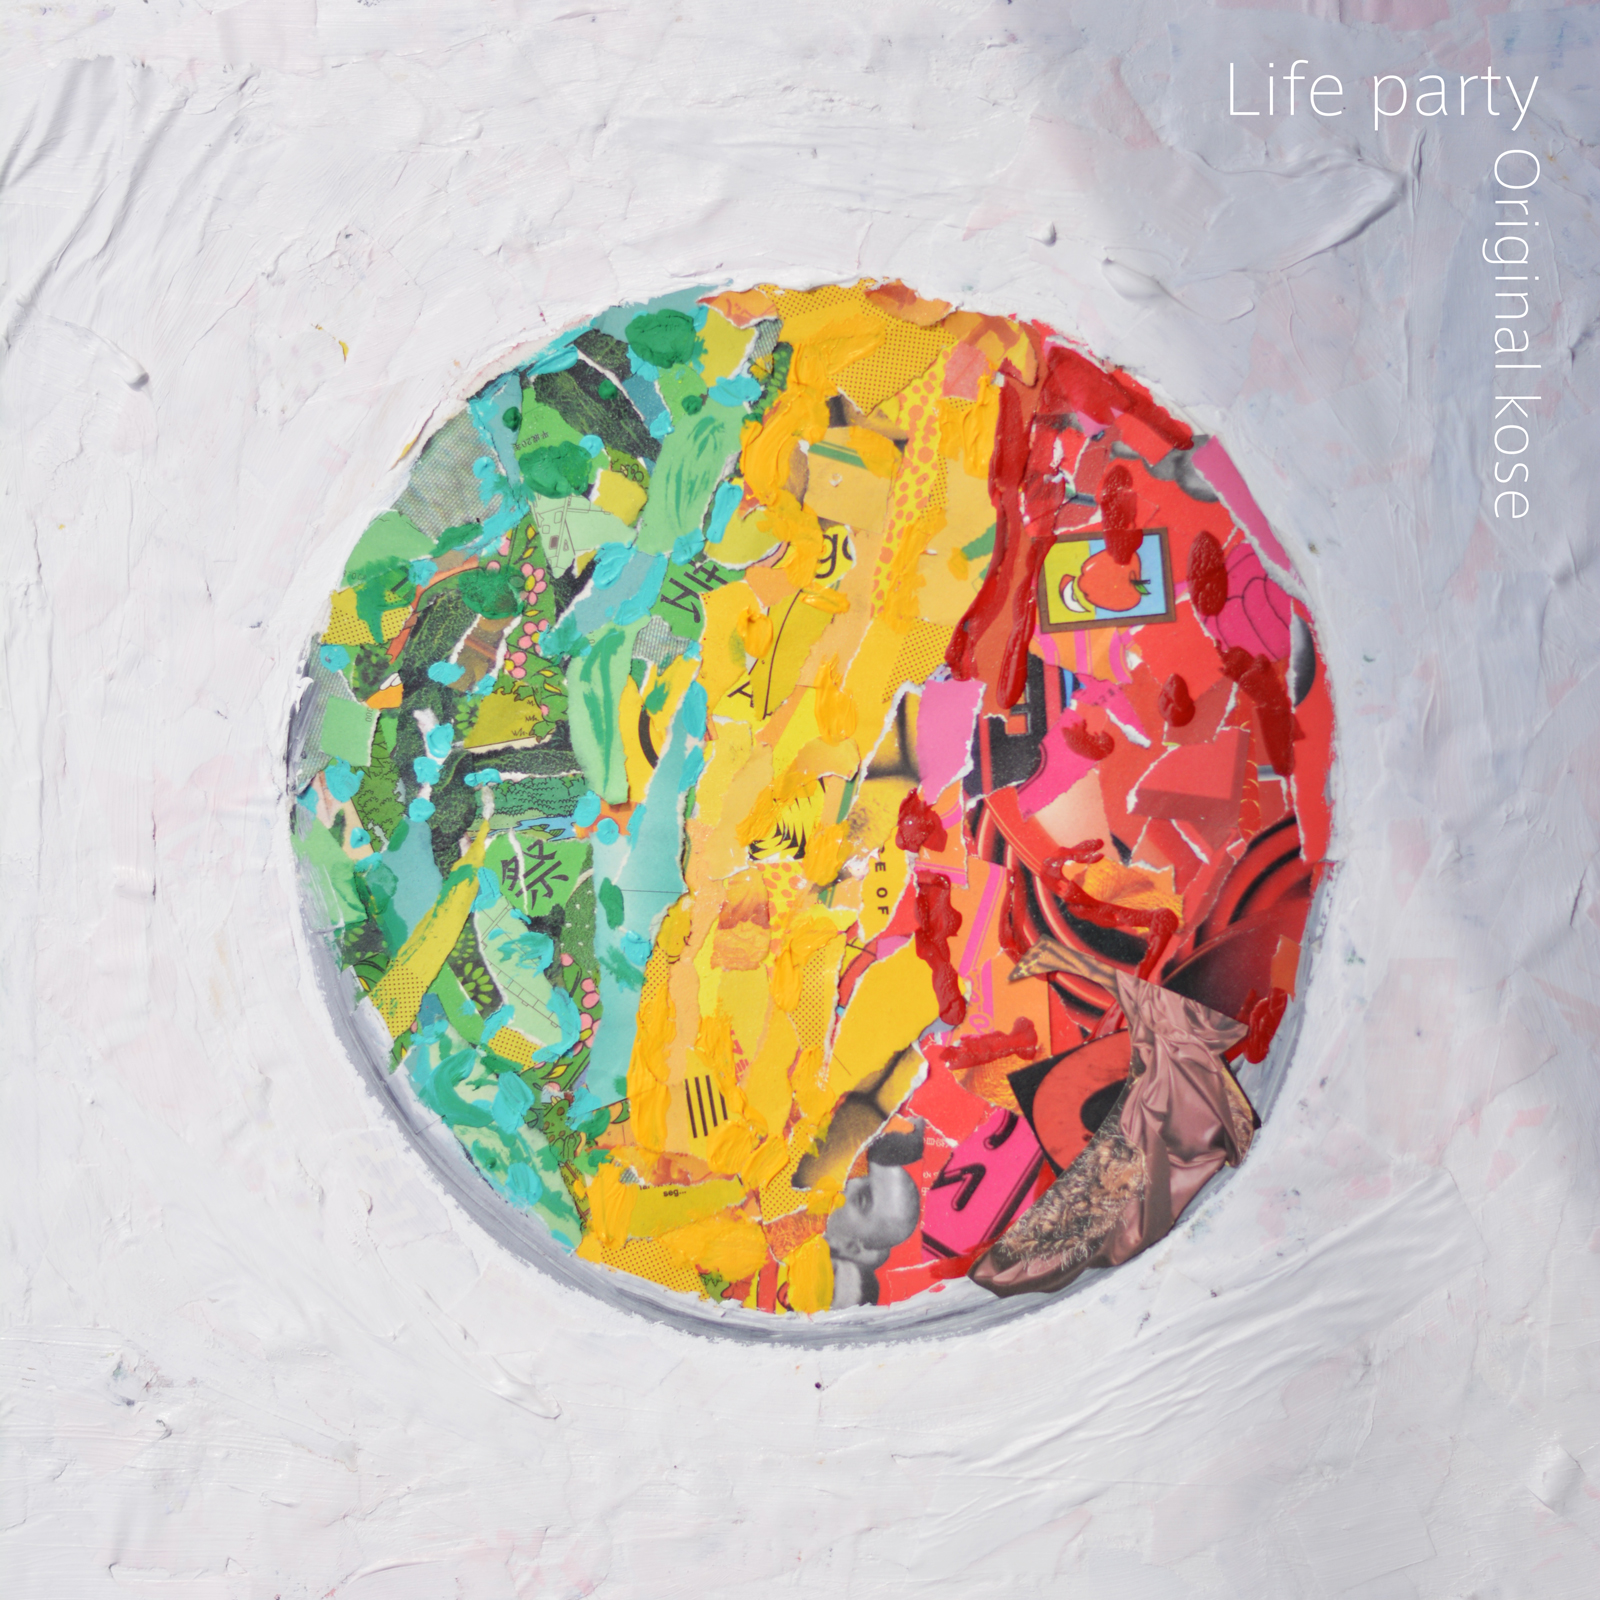 LIFE PARTY feat.ORIGINAL KOSE / TDC  produced by 焼け石に水プロダクション